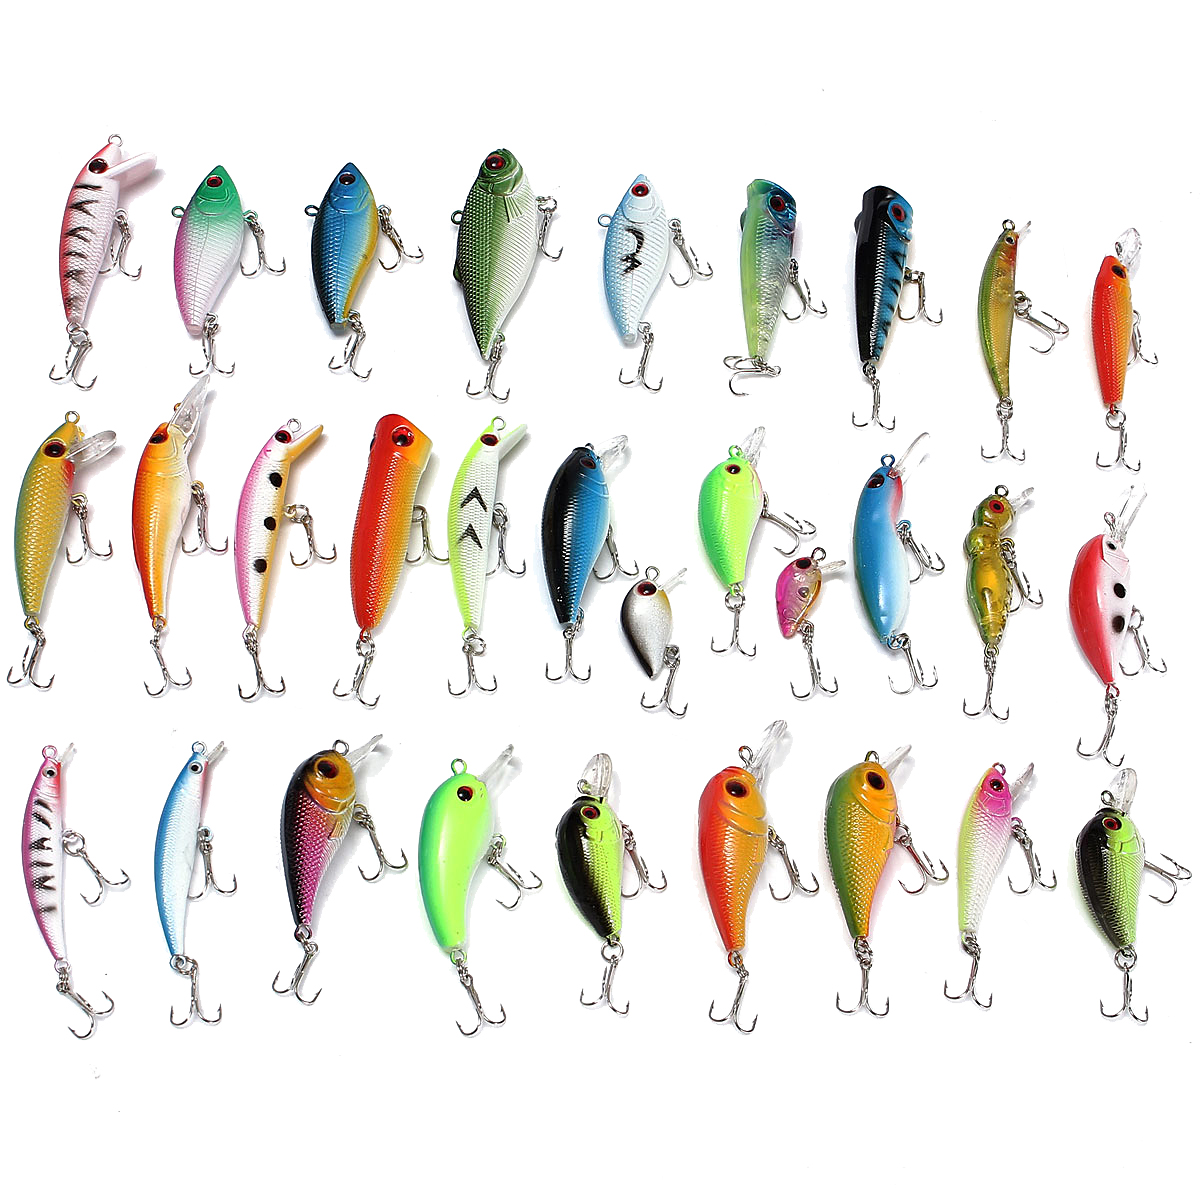 ZANLURE 30PCS Fishing Lures Stainless Steel PVC Crankba